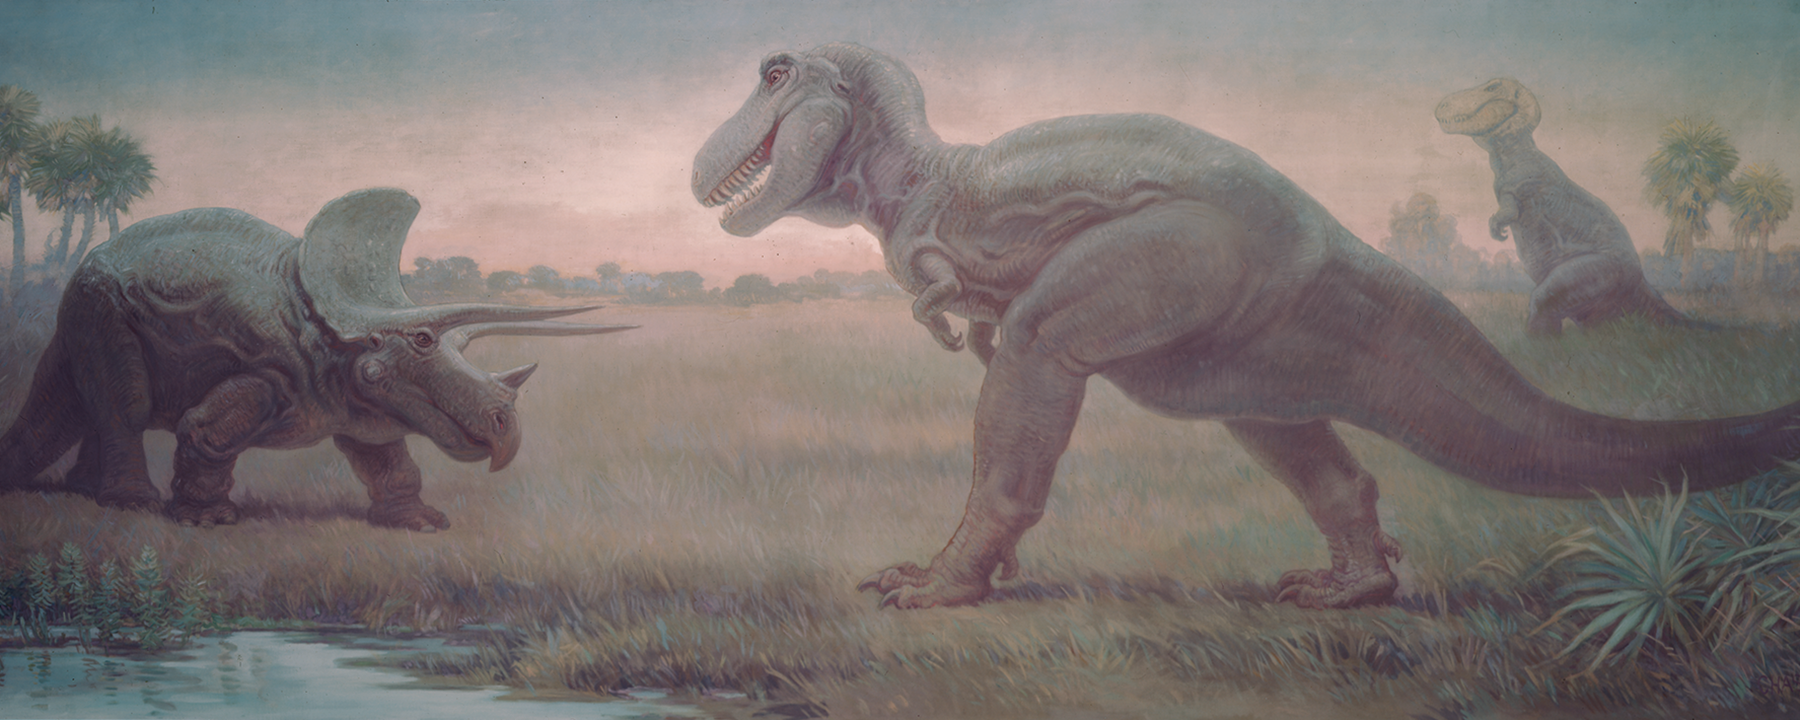 Painting Dinosaurs, early 20th century